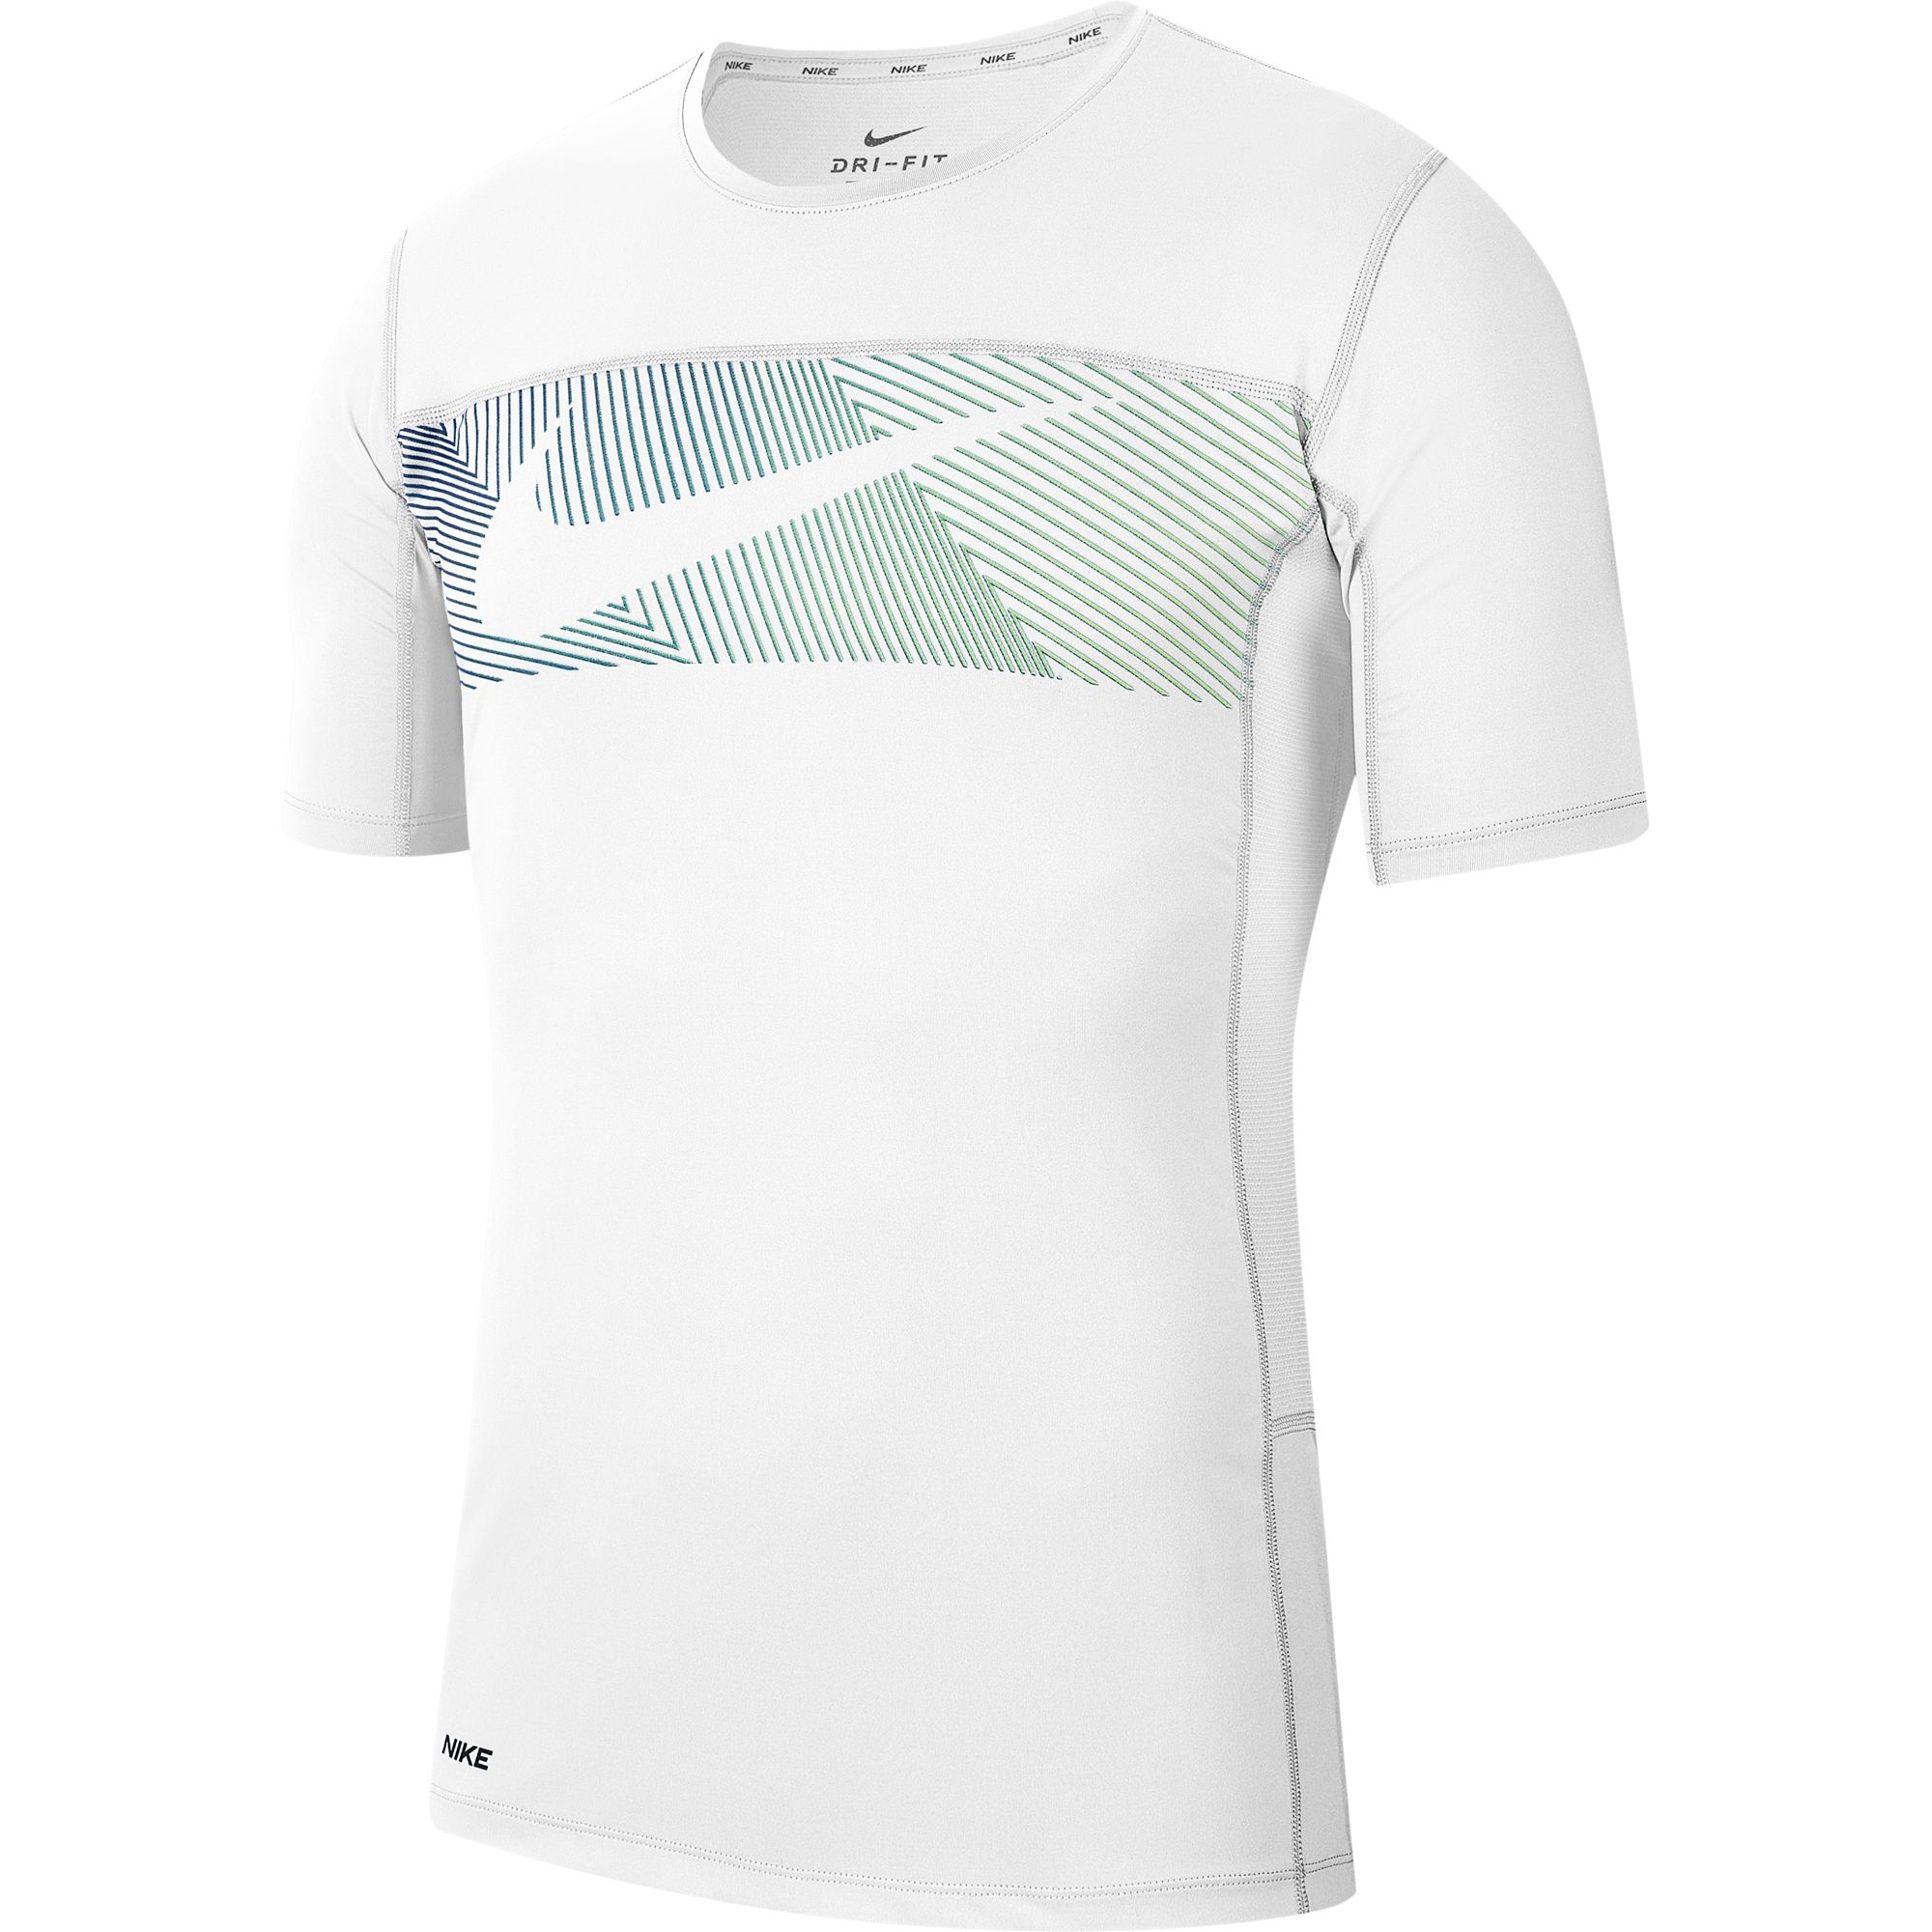 Men's Short-Sleeve Graphic Training Top, White, large